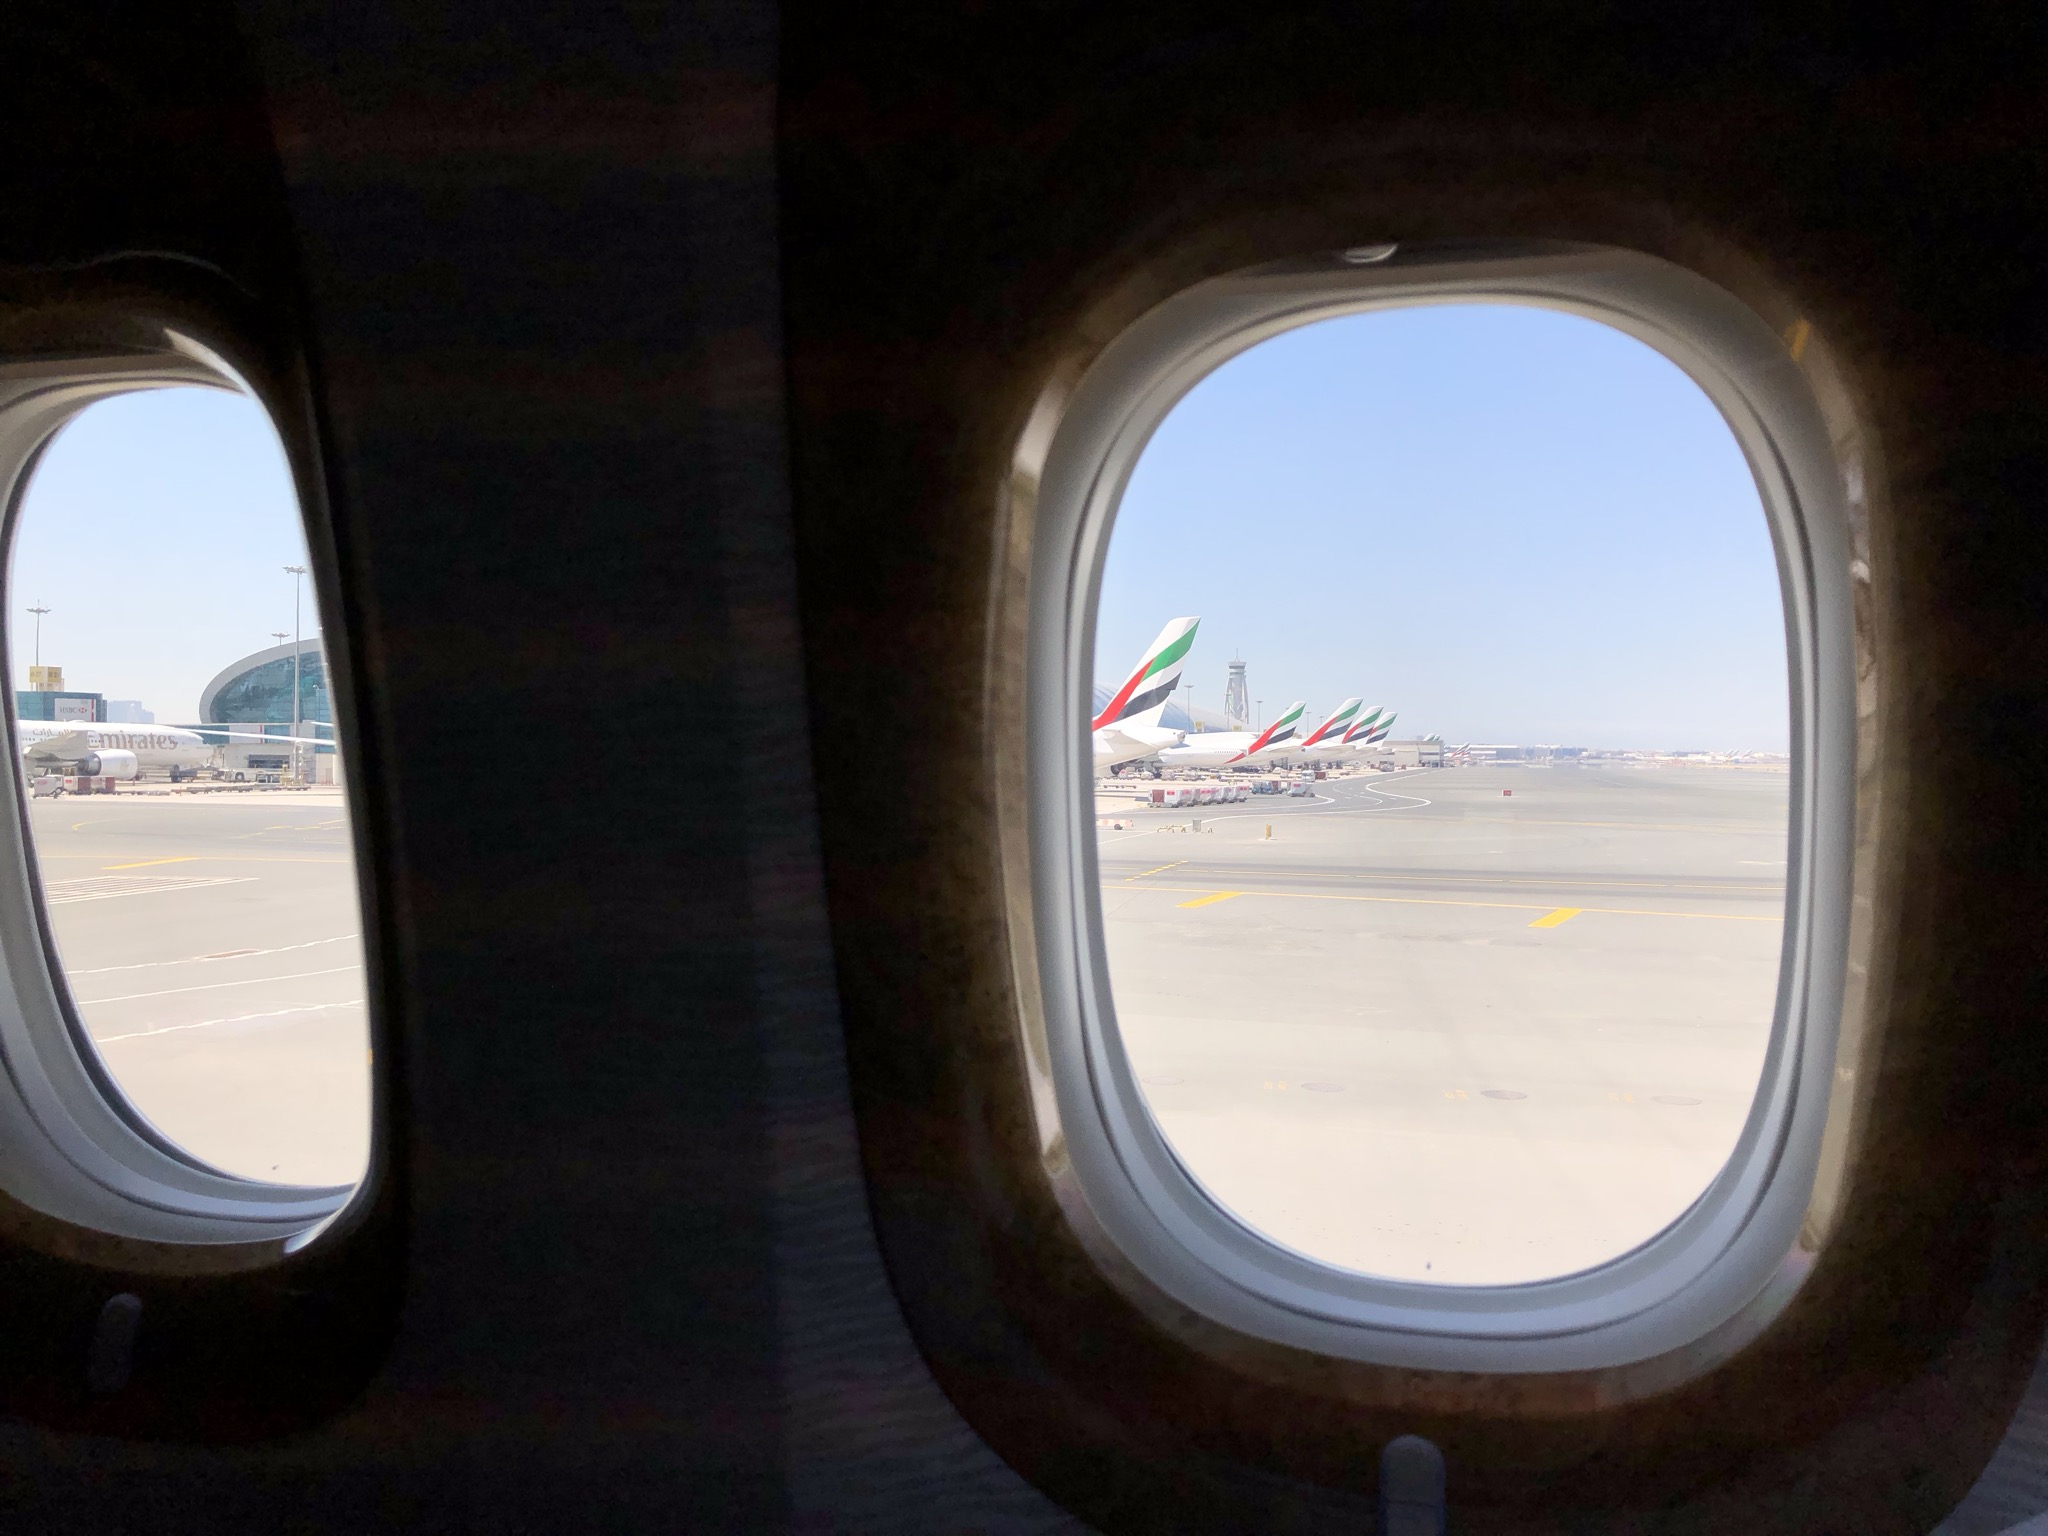 The endless fleet of Emirates planes at DXB